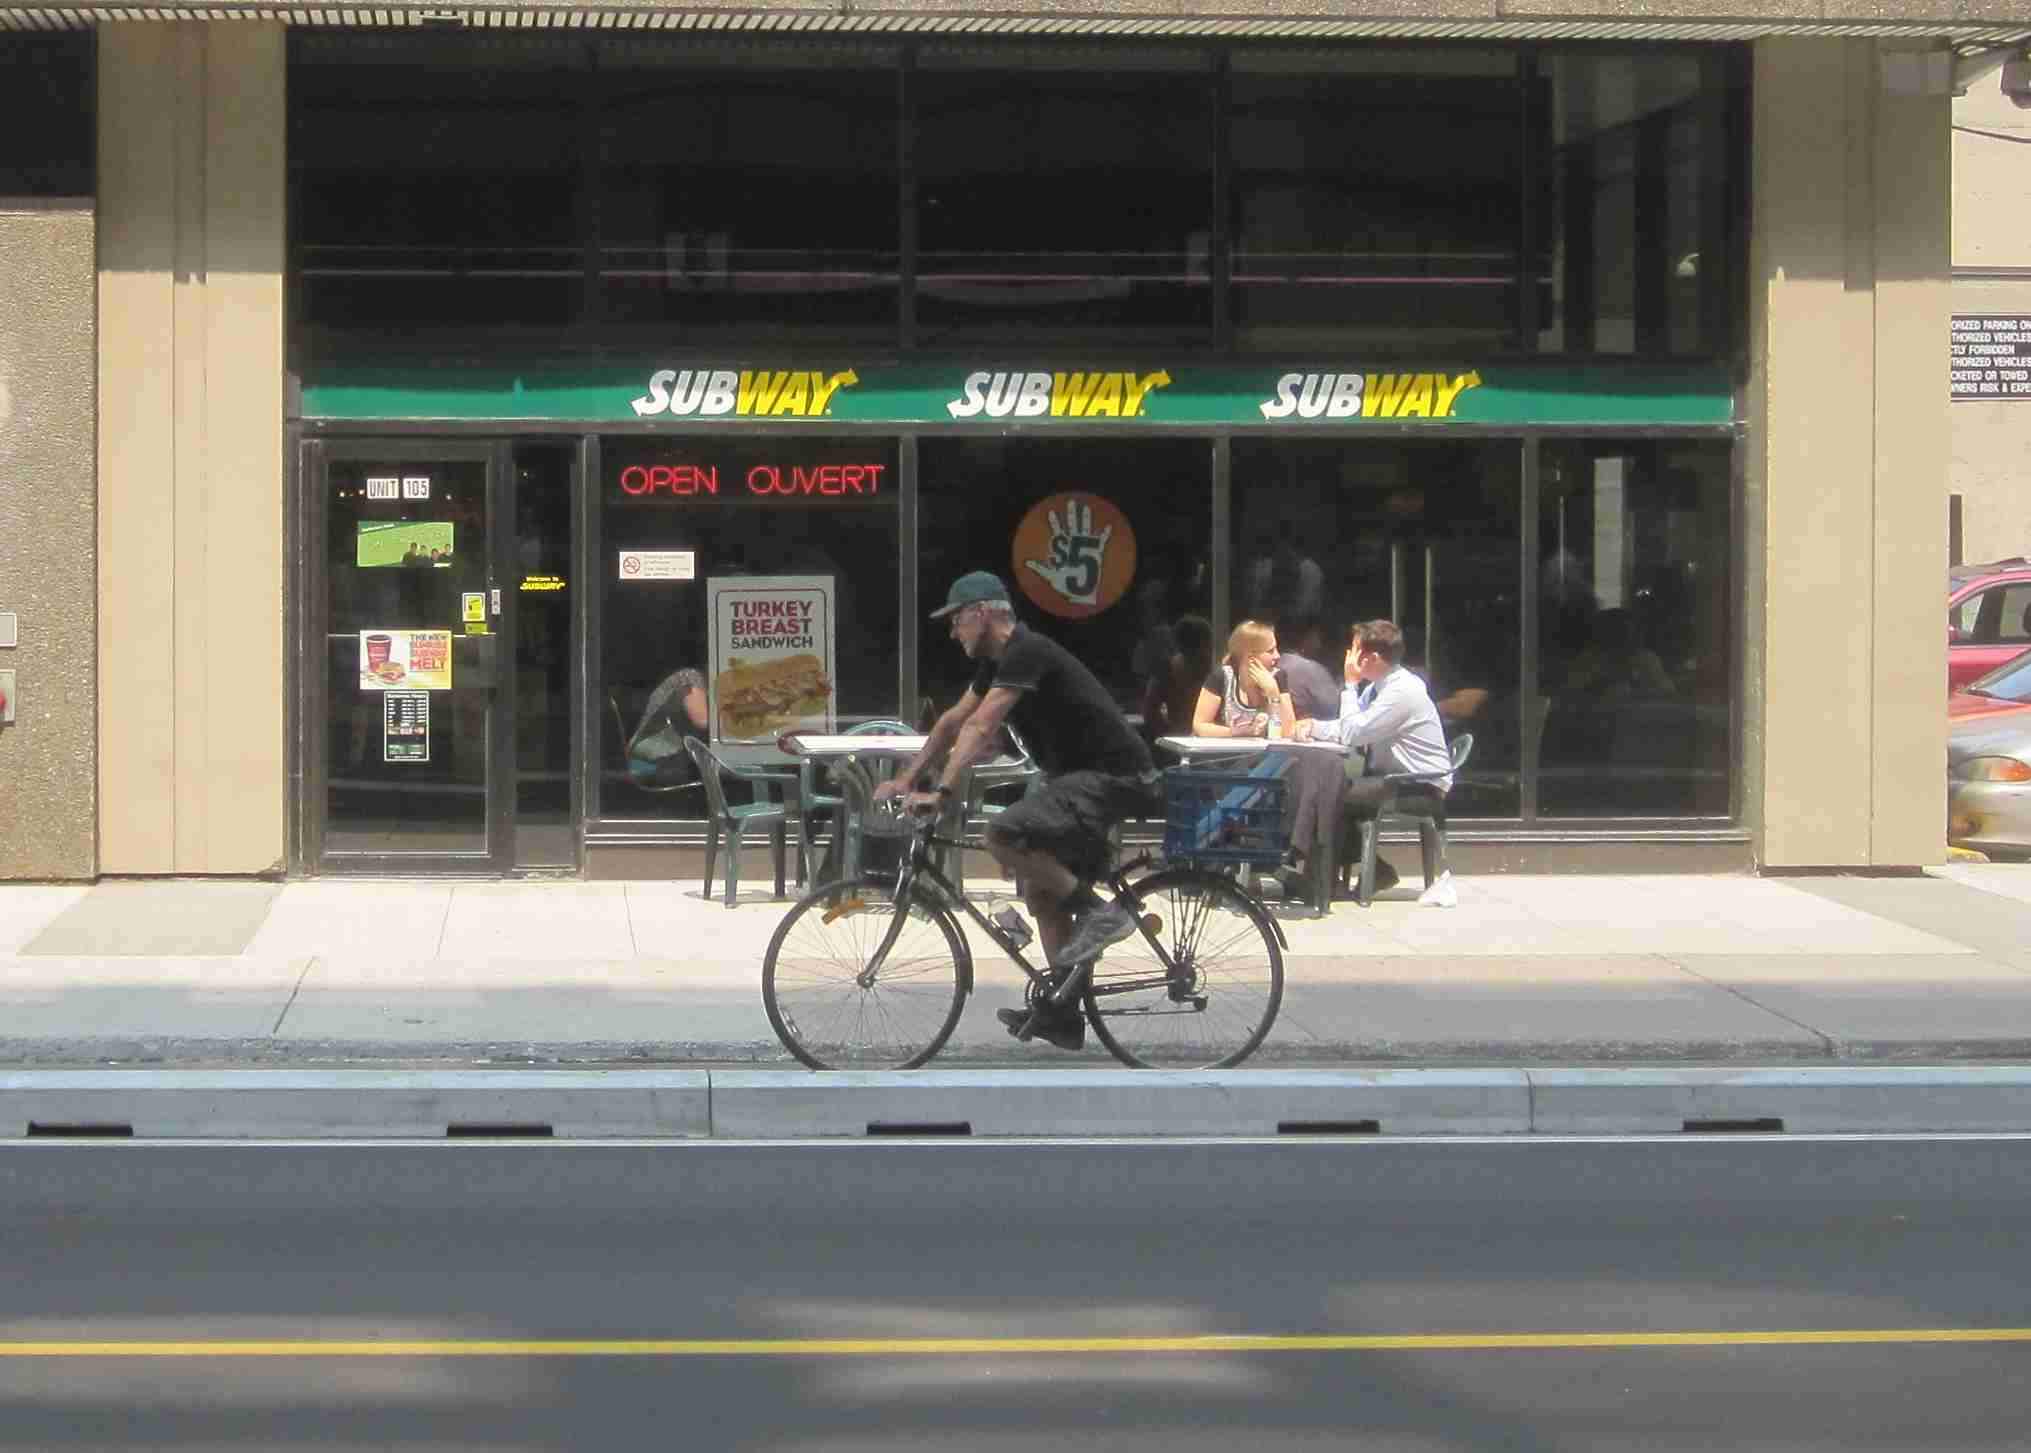 Ottawa Bicycle Culture – Subways